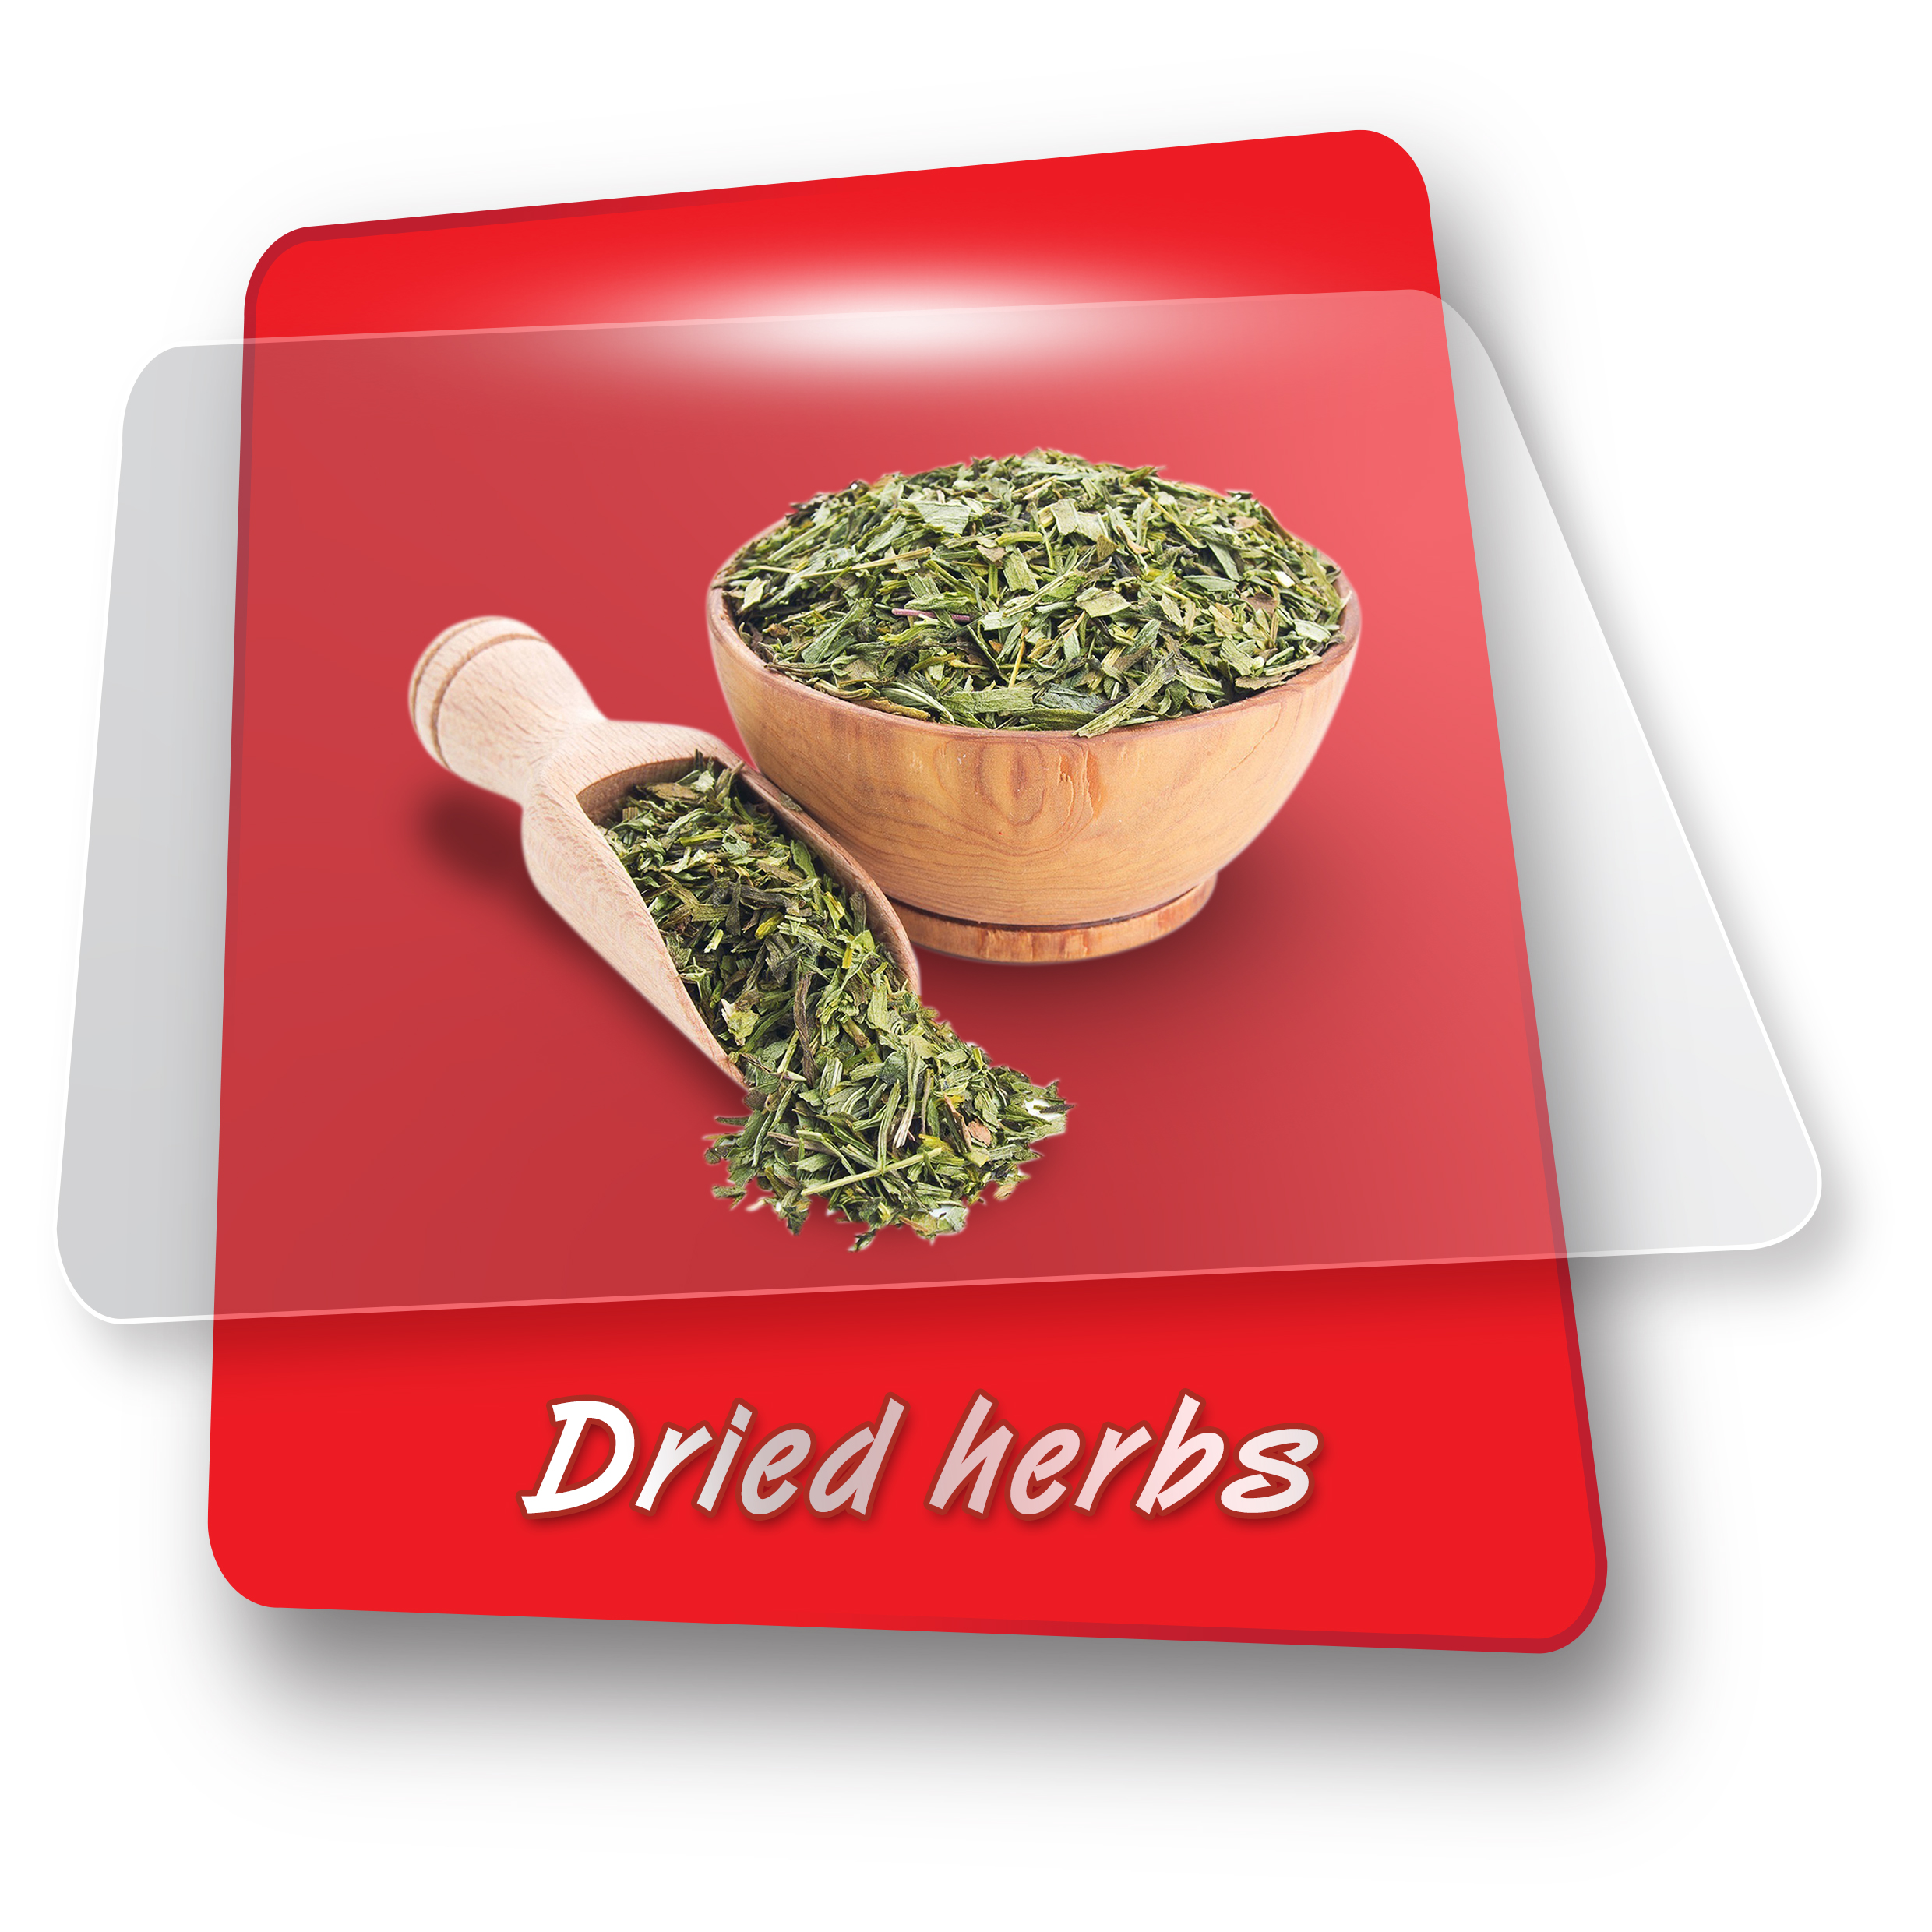 en--dried-herbs